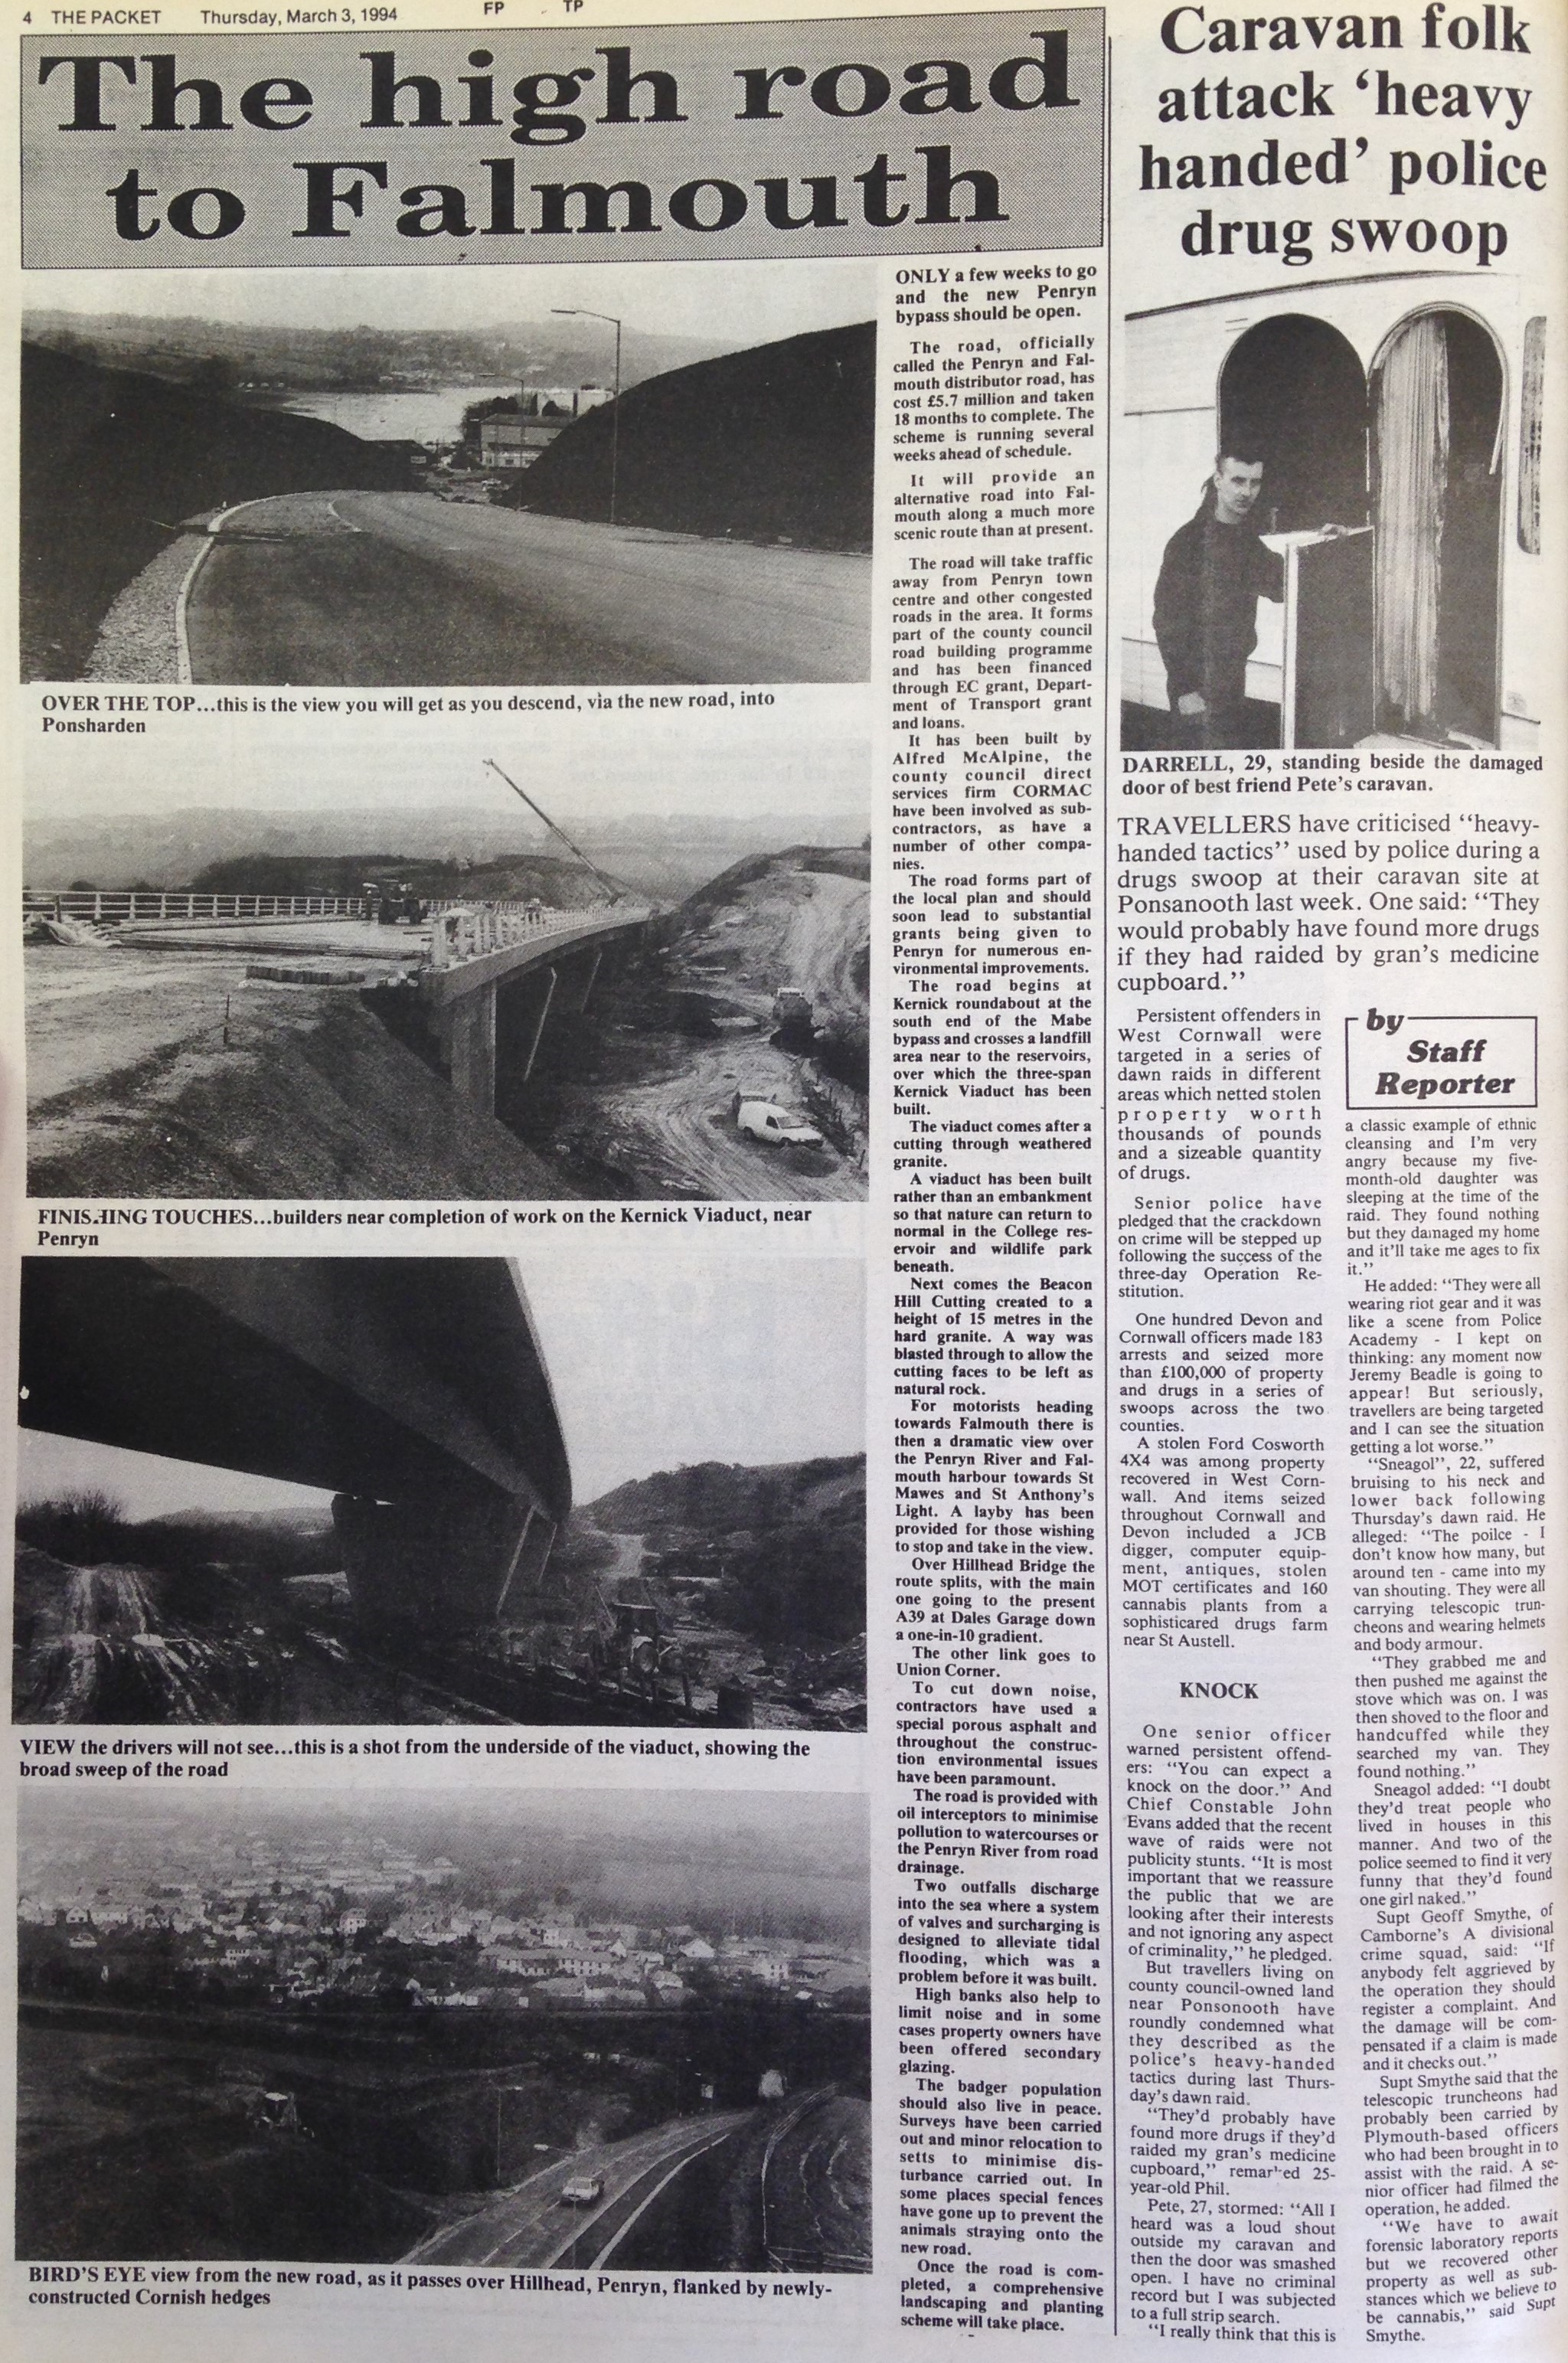 25 Years Ago: Only a few weeks to go for the new Penryn bypass